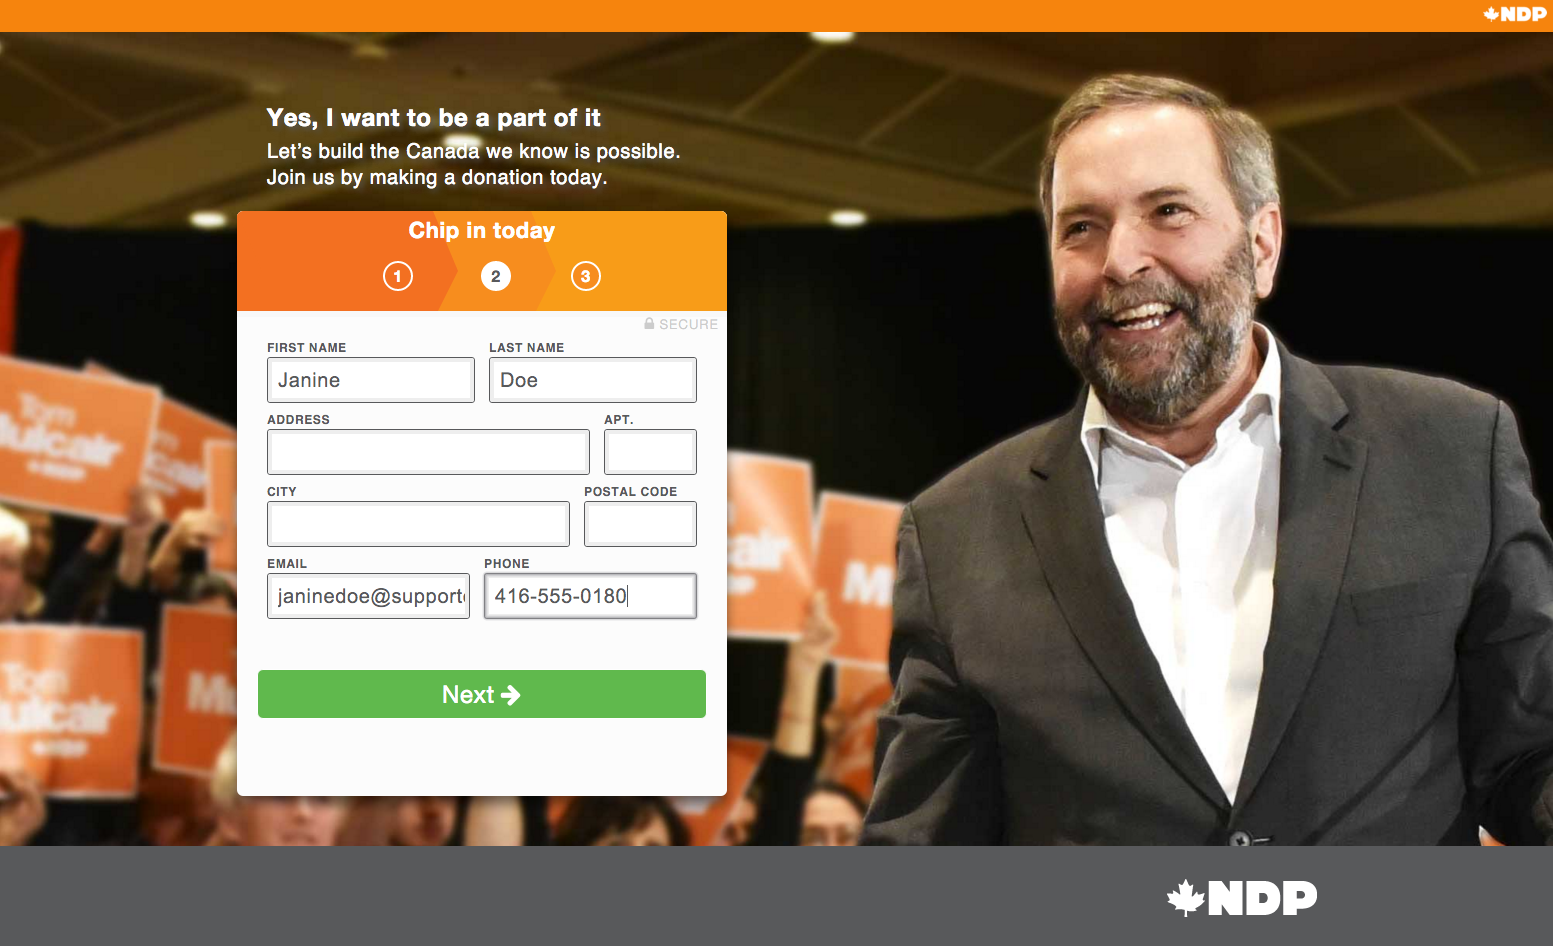 ndp_donate.png